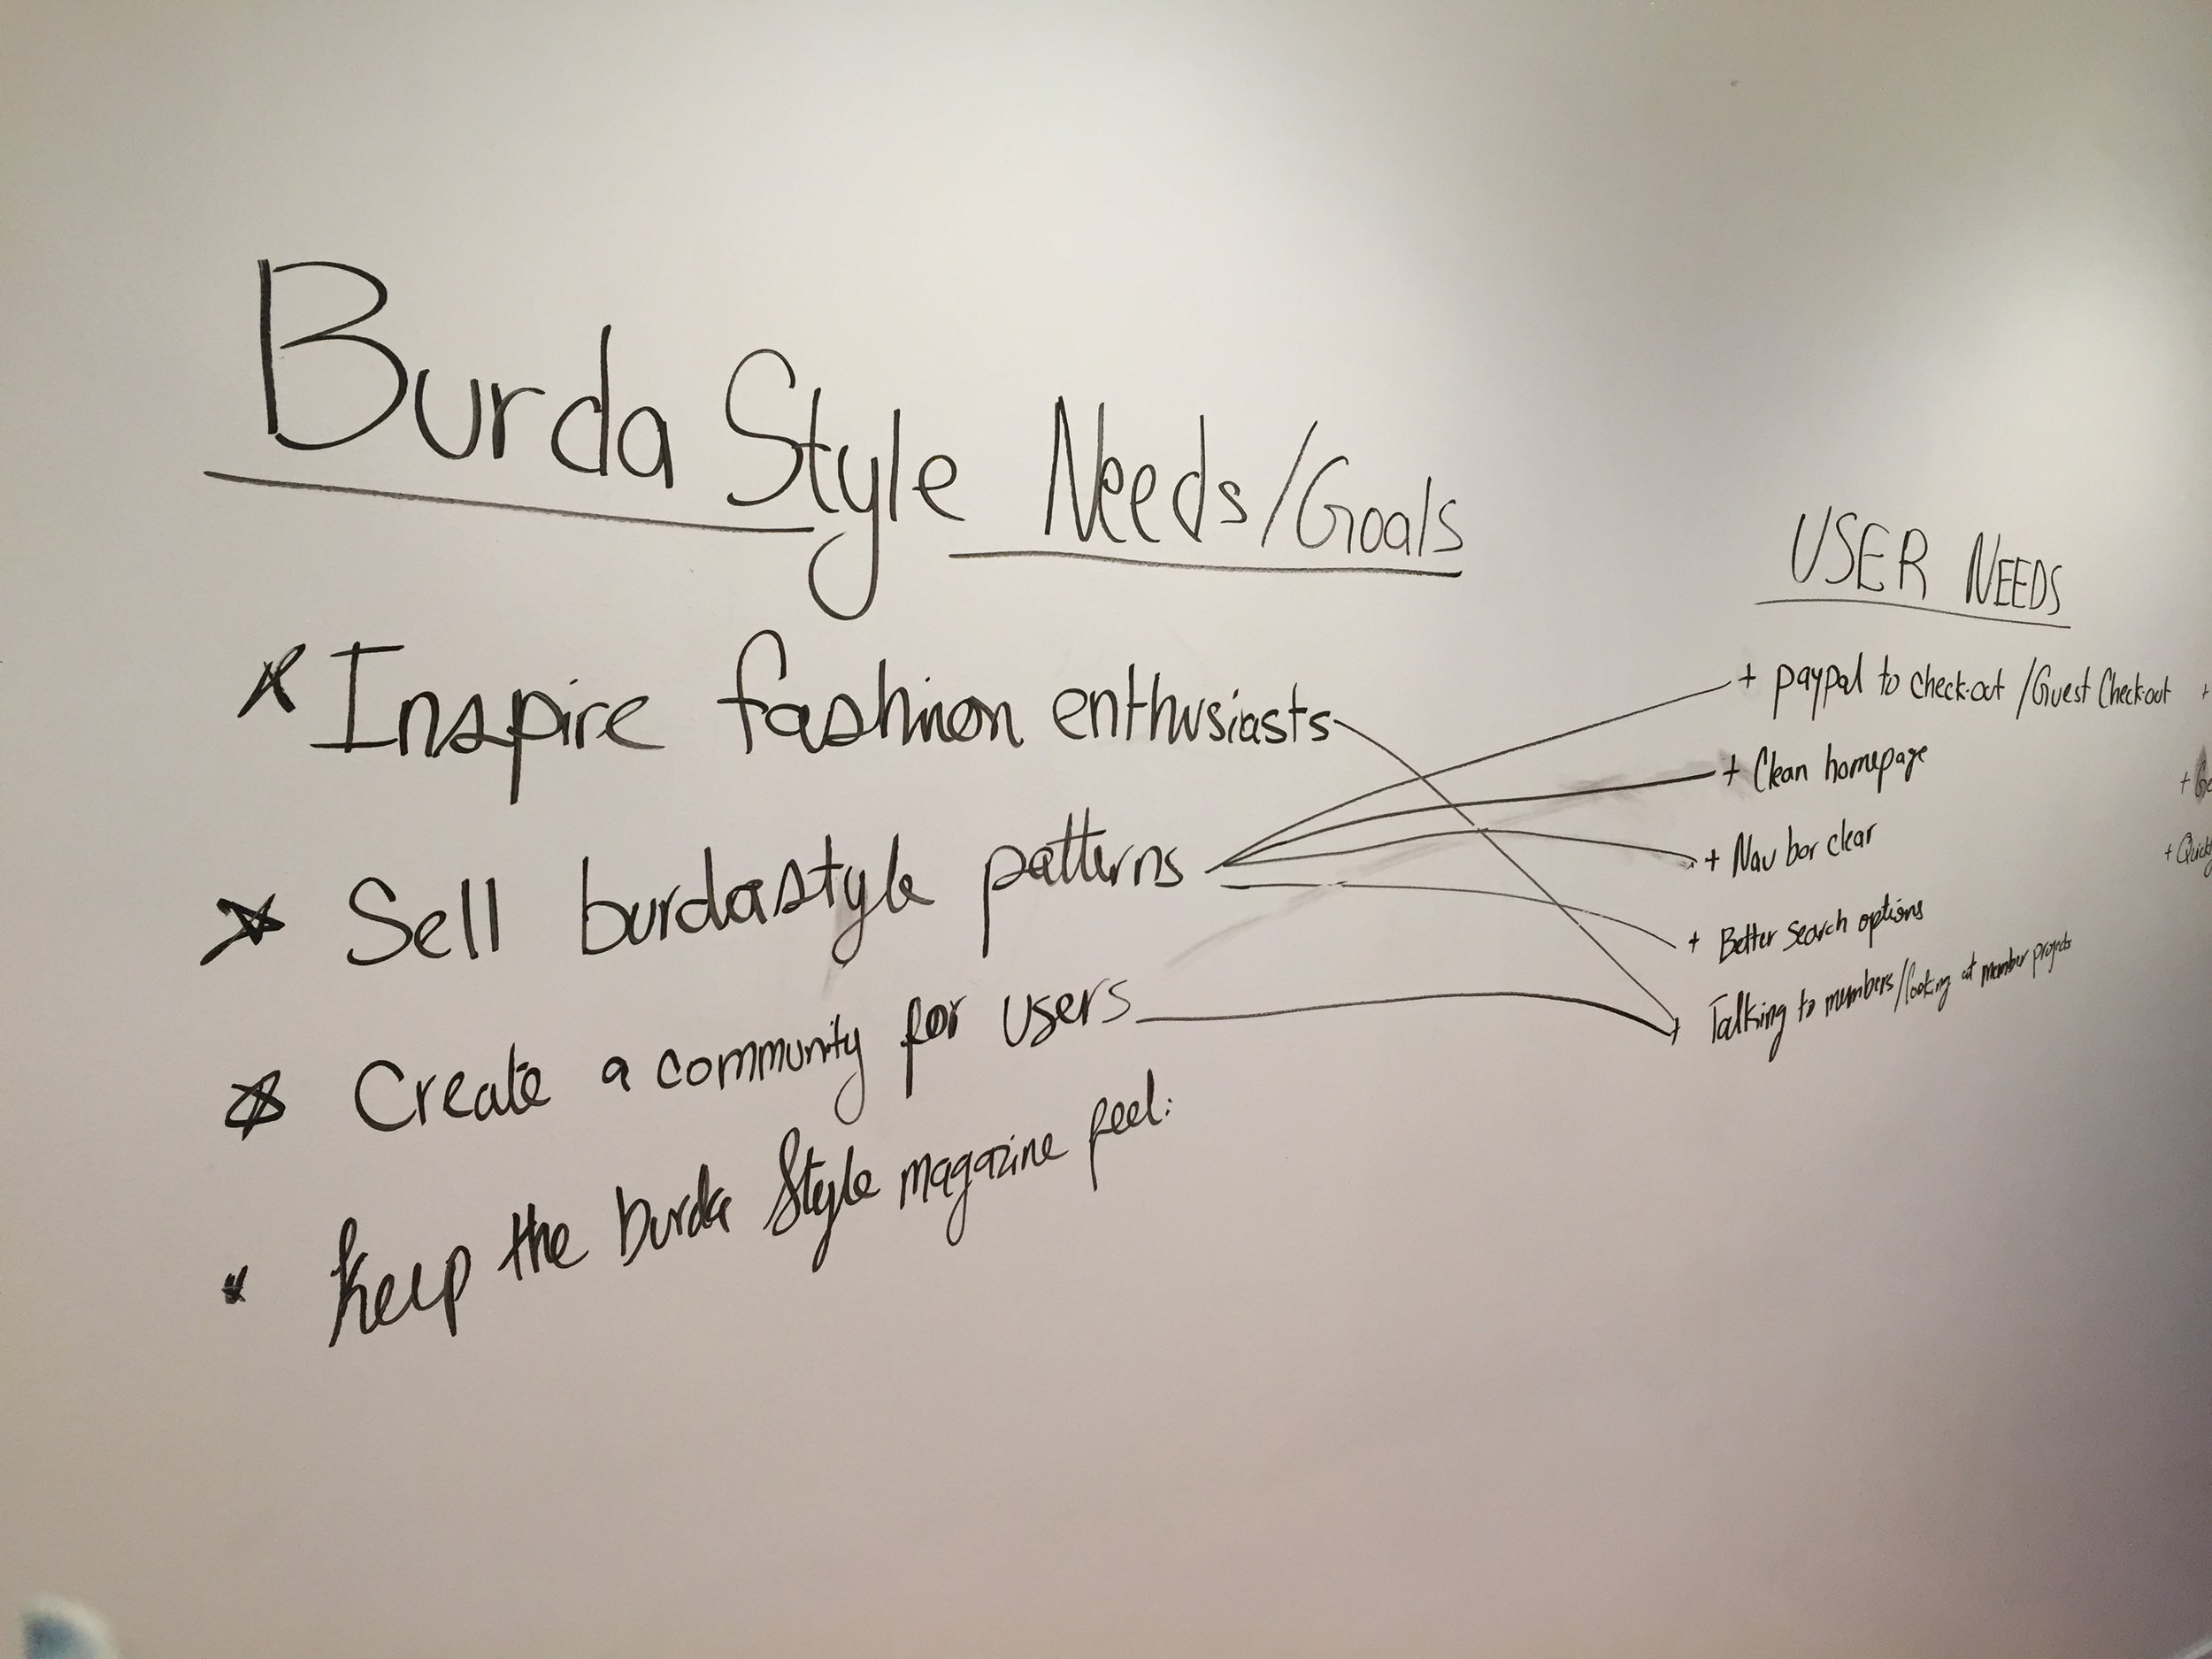 Connecting BurdaStyle Needs with User Needs